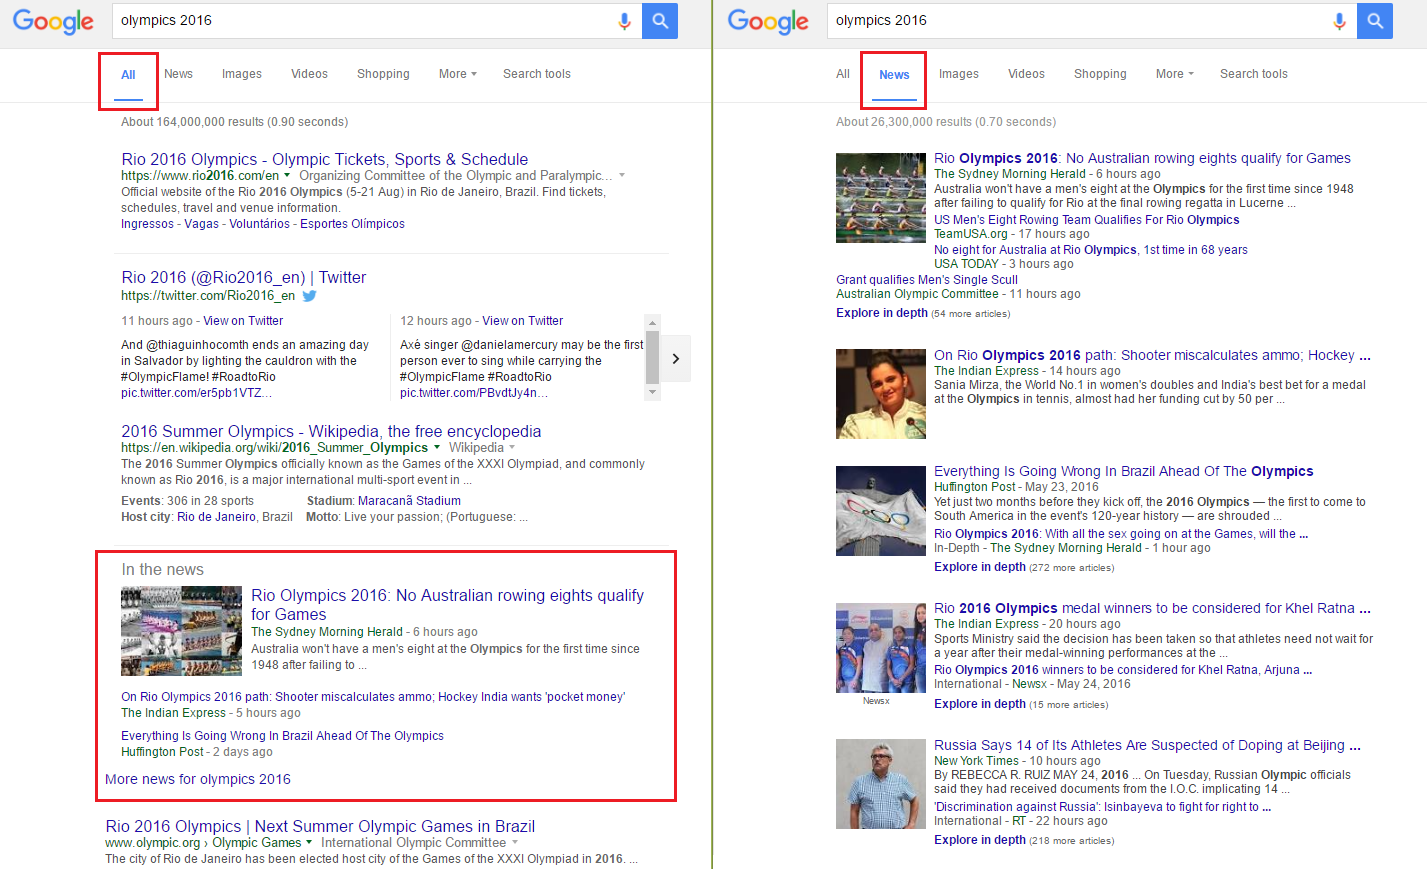 Left image: organic search results for the keyword [olympics 2016], with the News Universal-Search-result marked in red. Right image: Google News tab selected. Exclusively shows Google News results